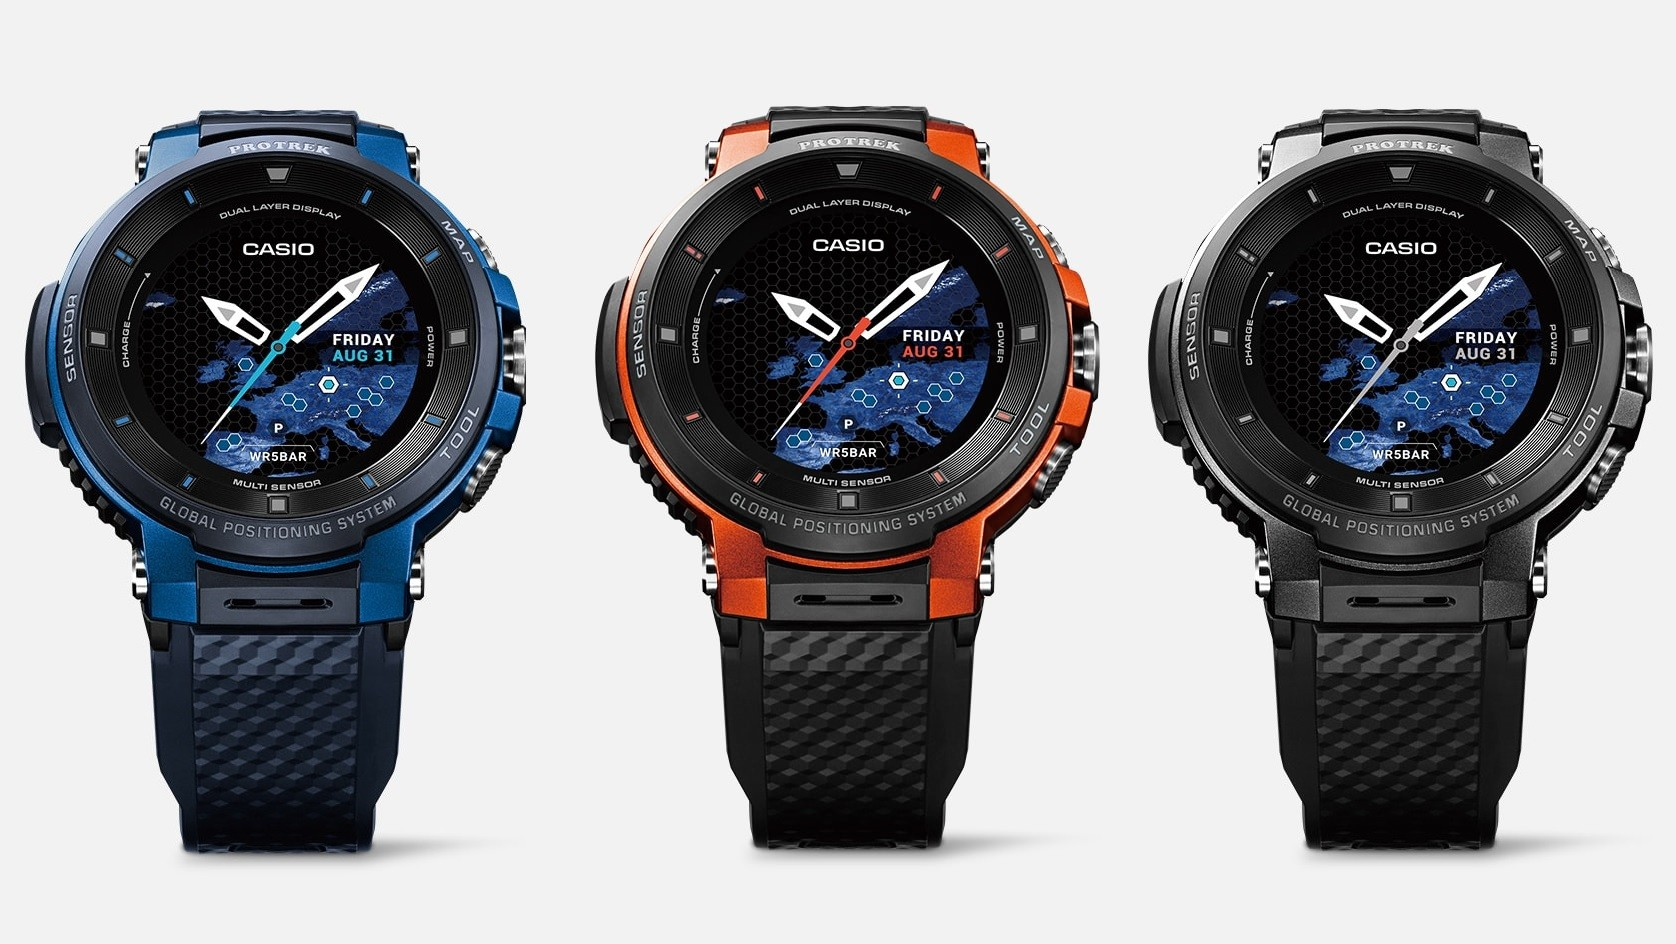 Casio World Map Watch.Casio S New Pro Trek Smart Supports Offline Color Maps And Gps